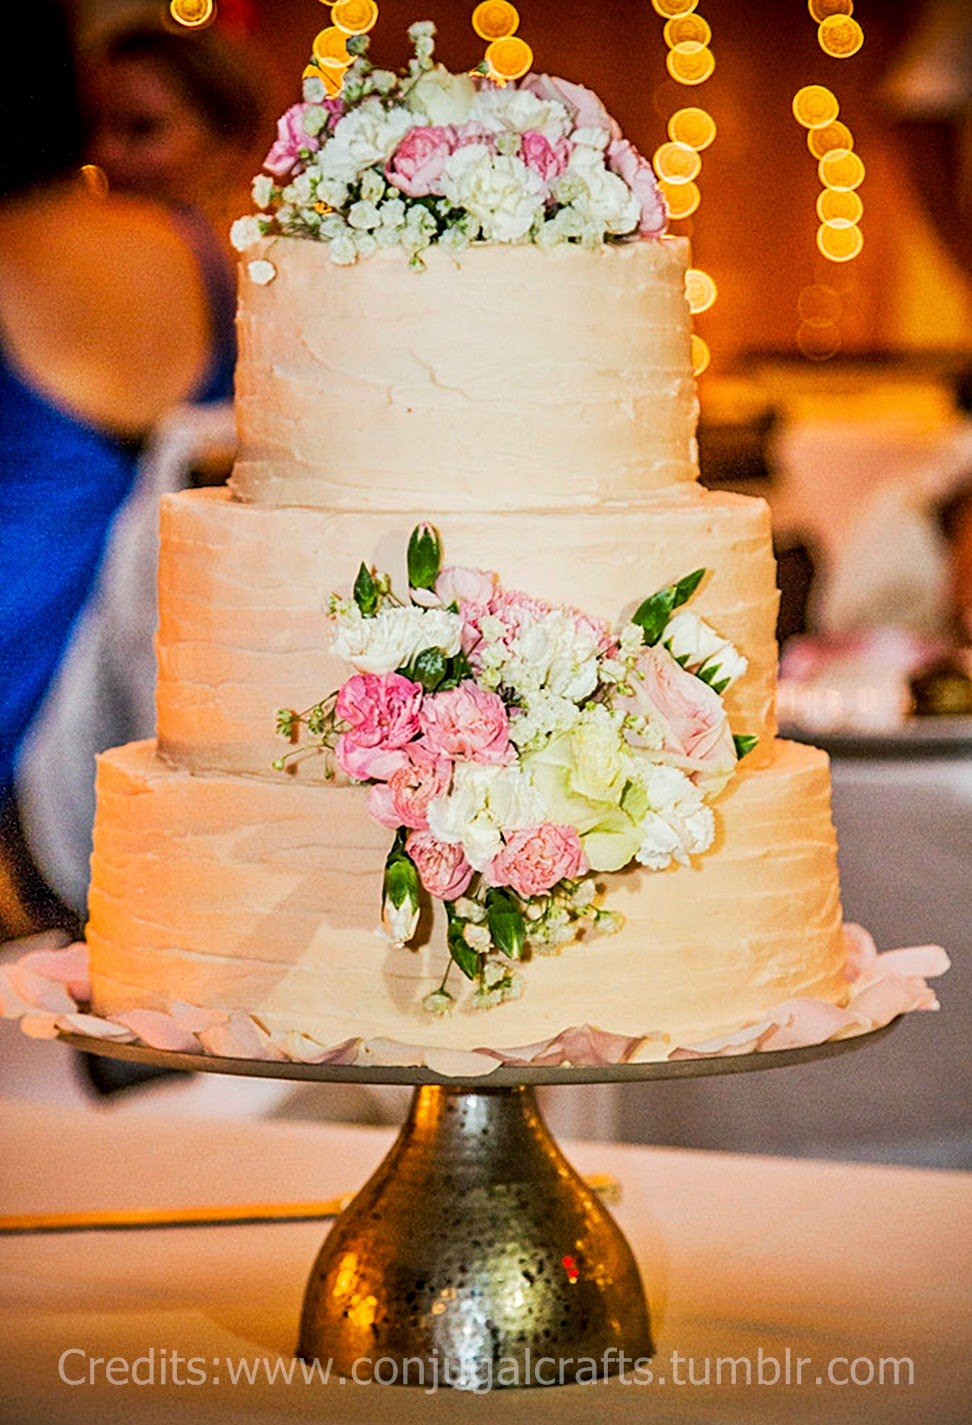 Red Velvet Cake Iced With Vanilla Butter Cream For The Second Wedding This Month Color Scheme Was White And Pale Pink I Tried Several Times Before